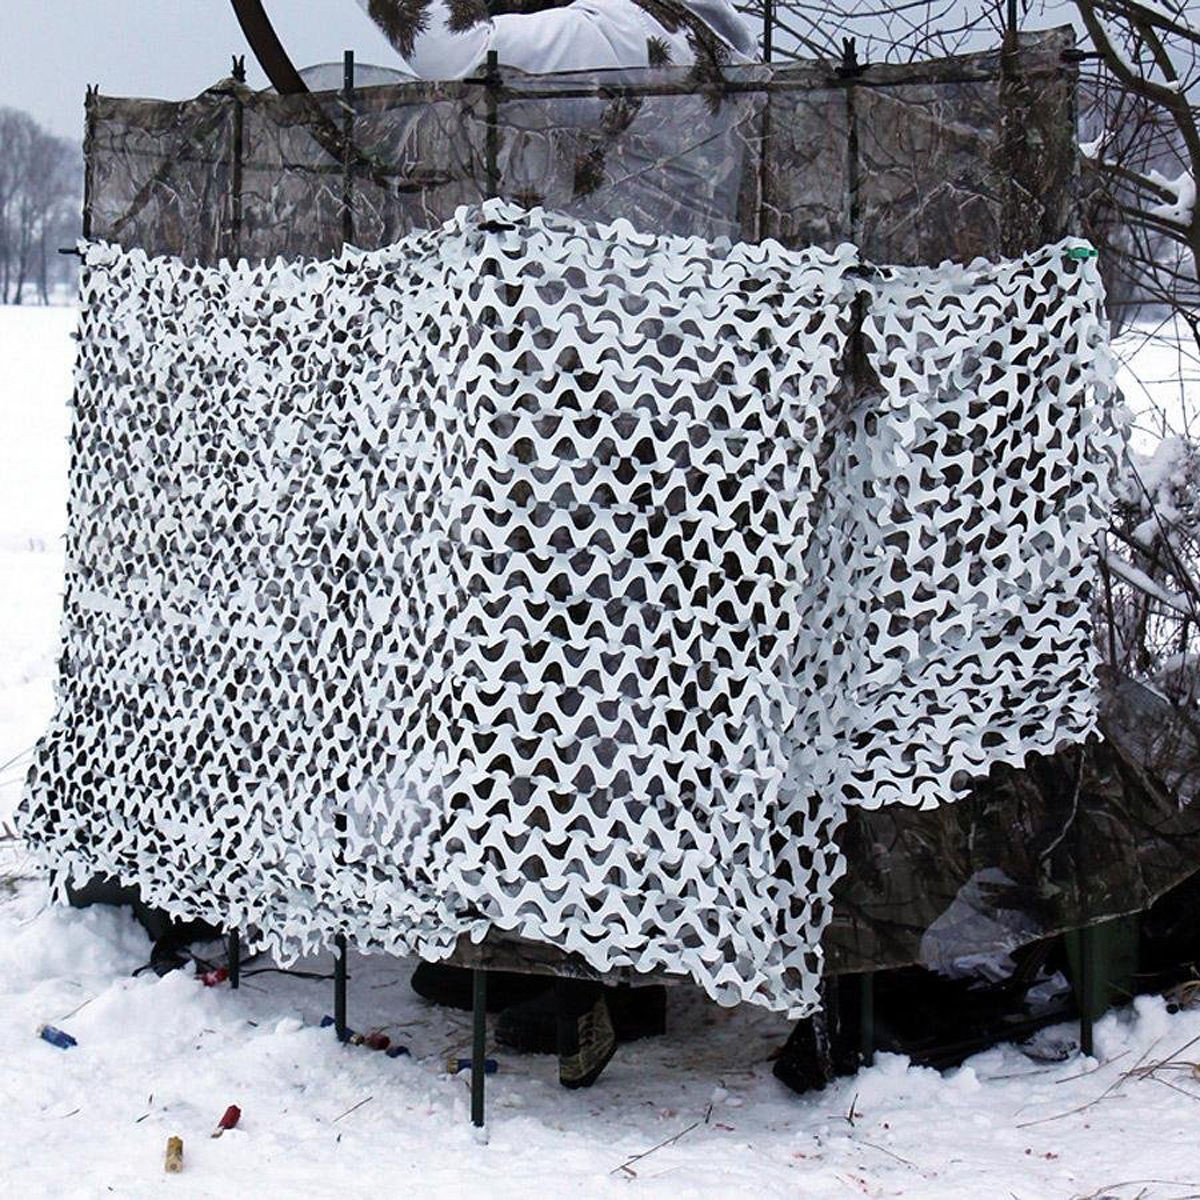 White Snow Camouflage Net Camping Garden Party Decor Photography Camo Tent Cover Sunshade Net